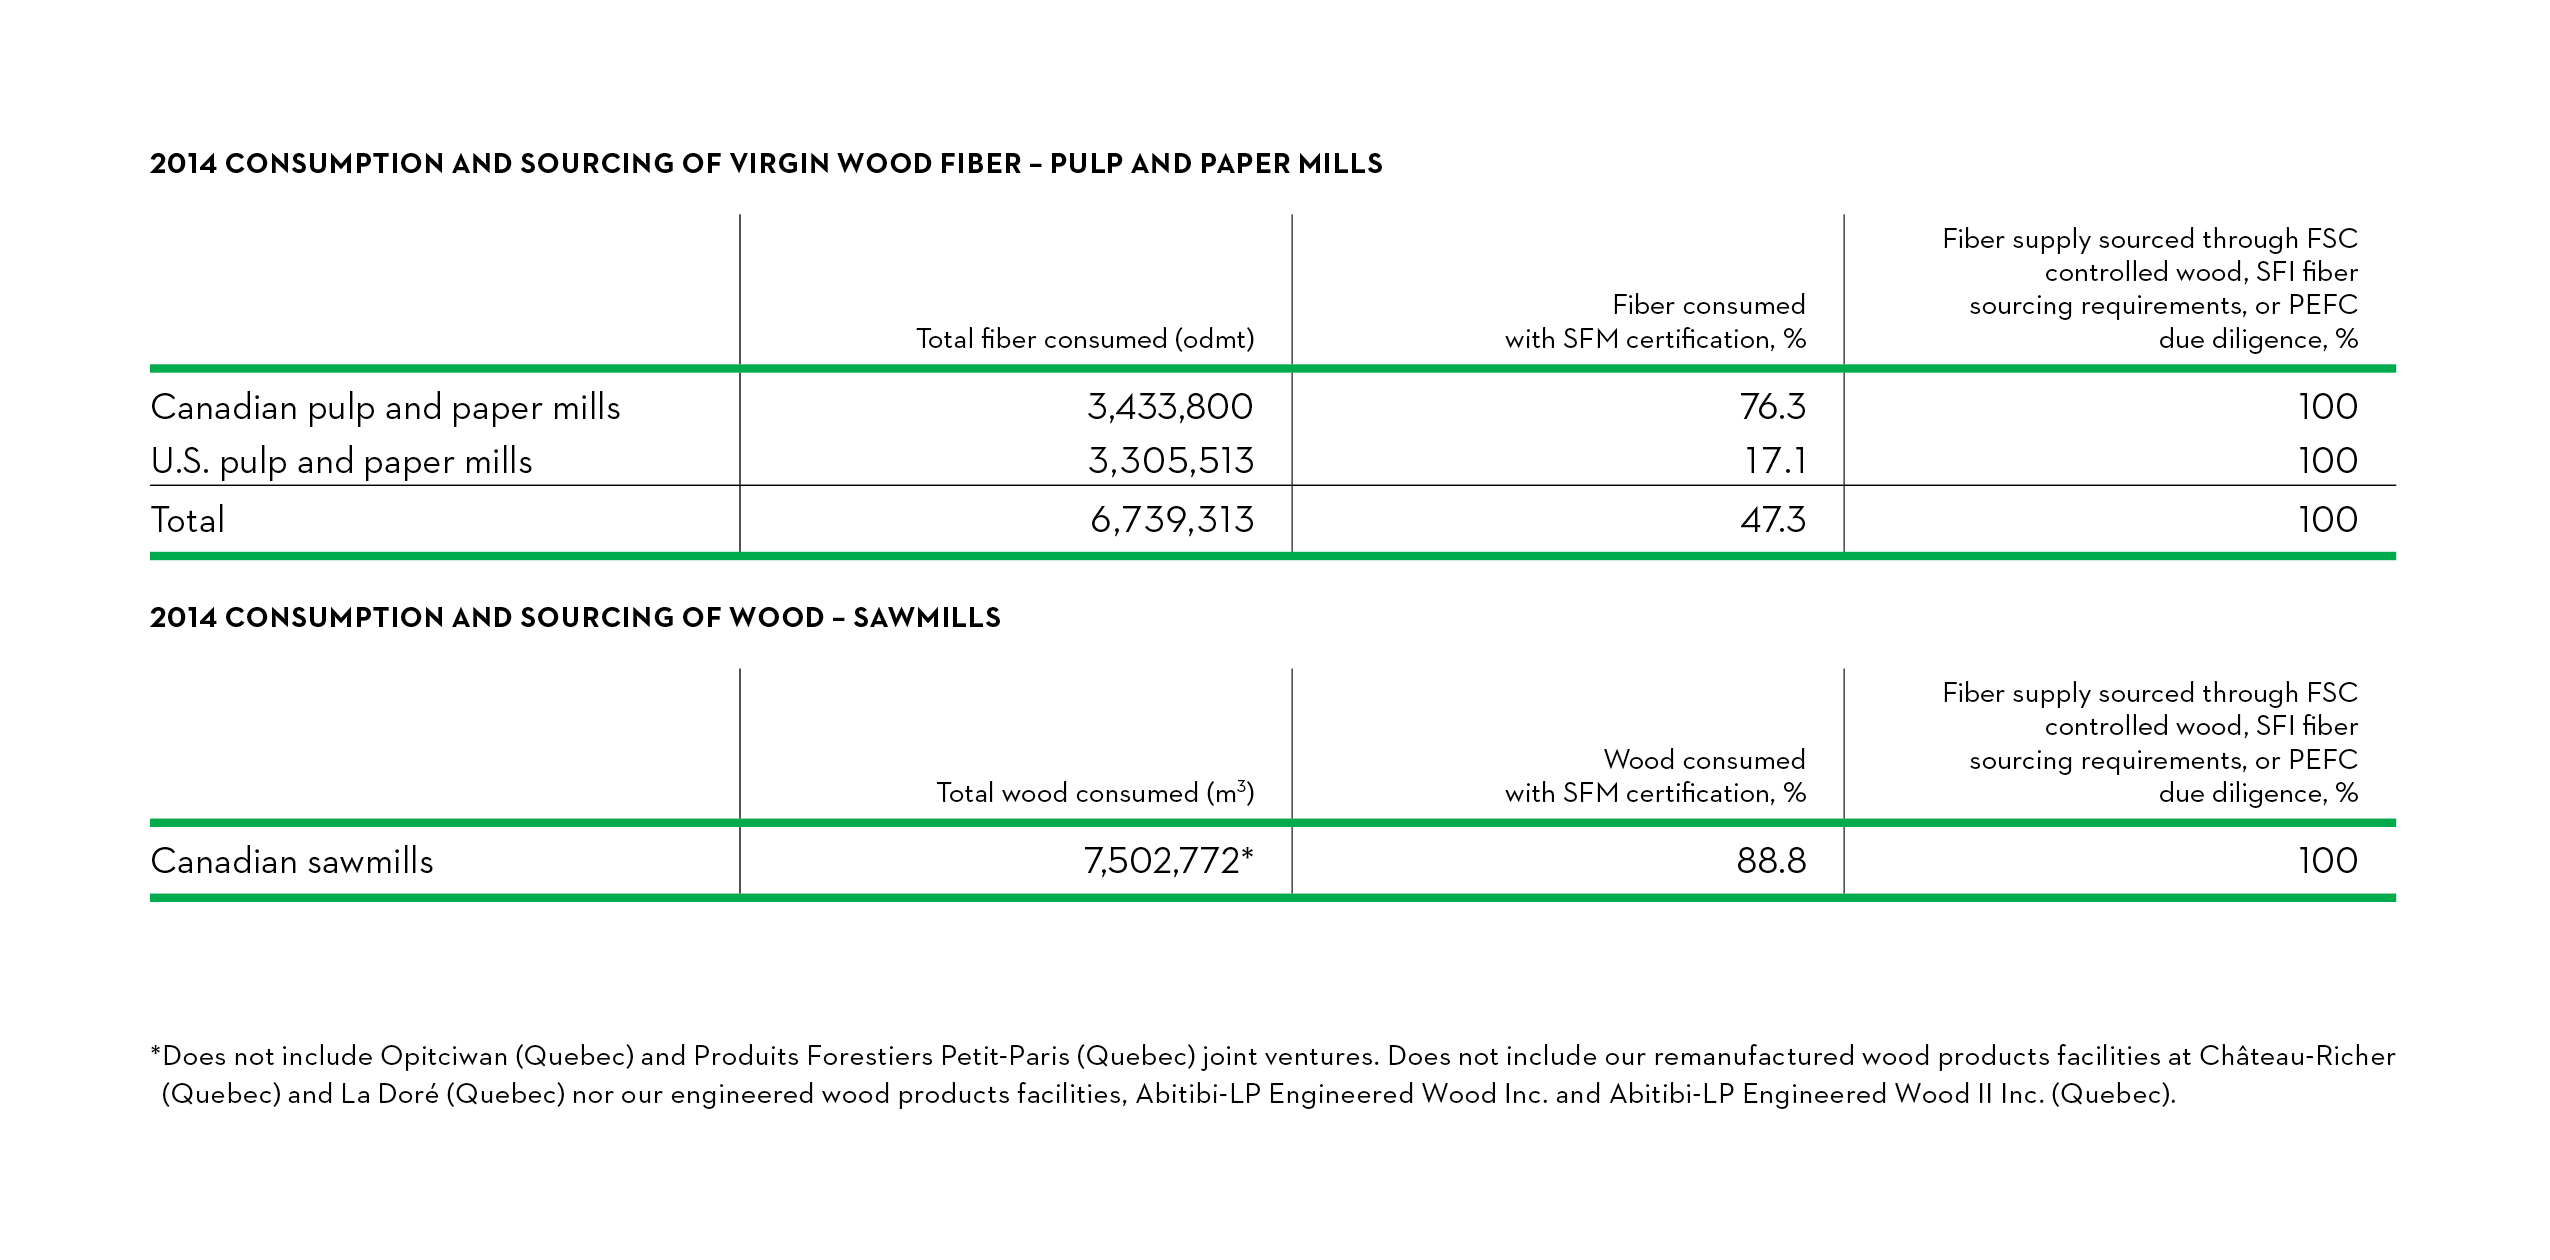 2014 Consumption and sourcing of virgin wood fiber - Pulp and Paper Mills